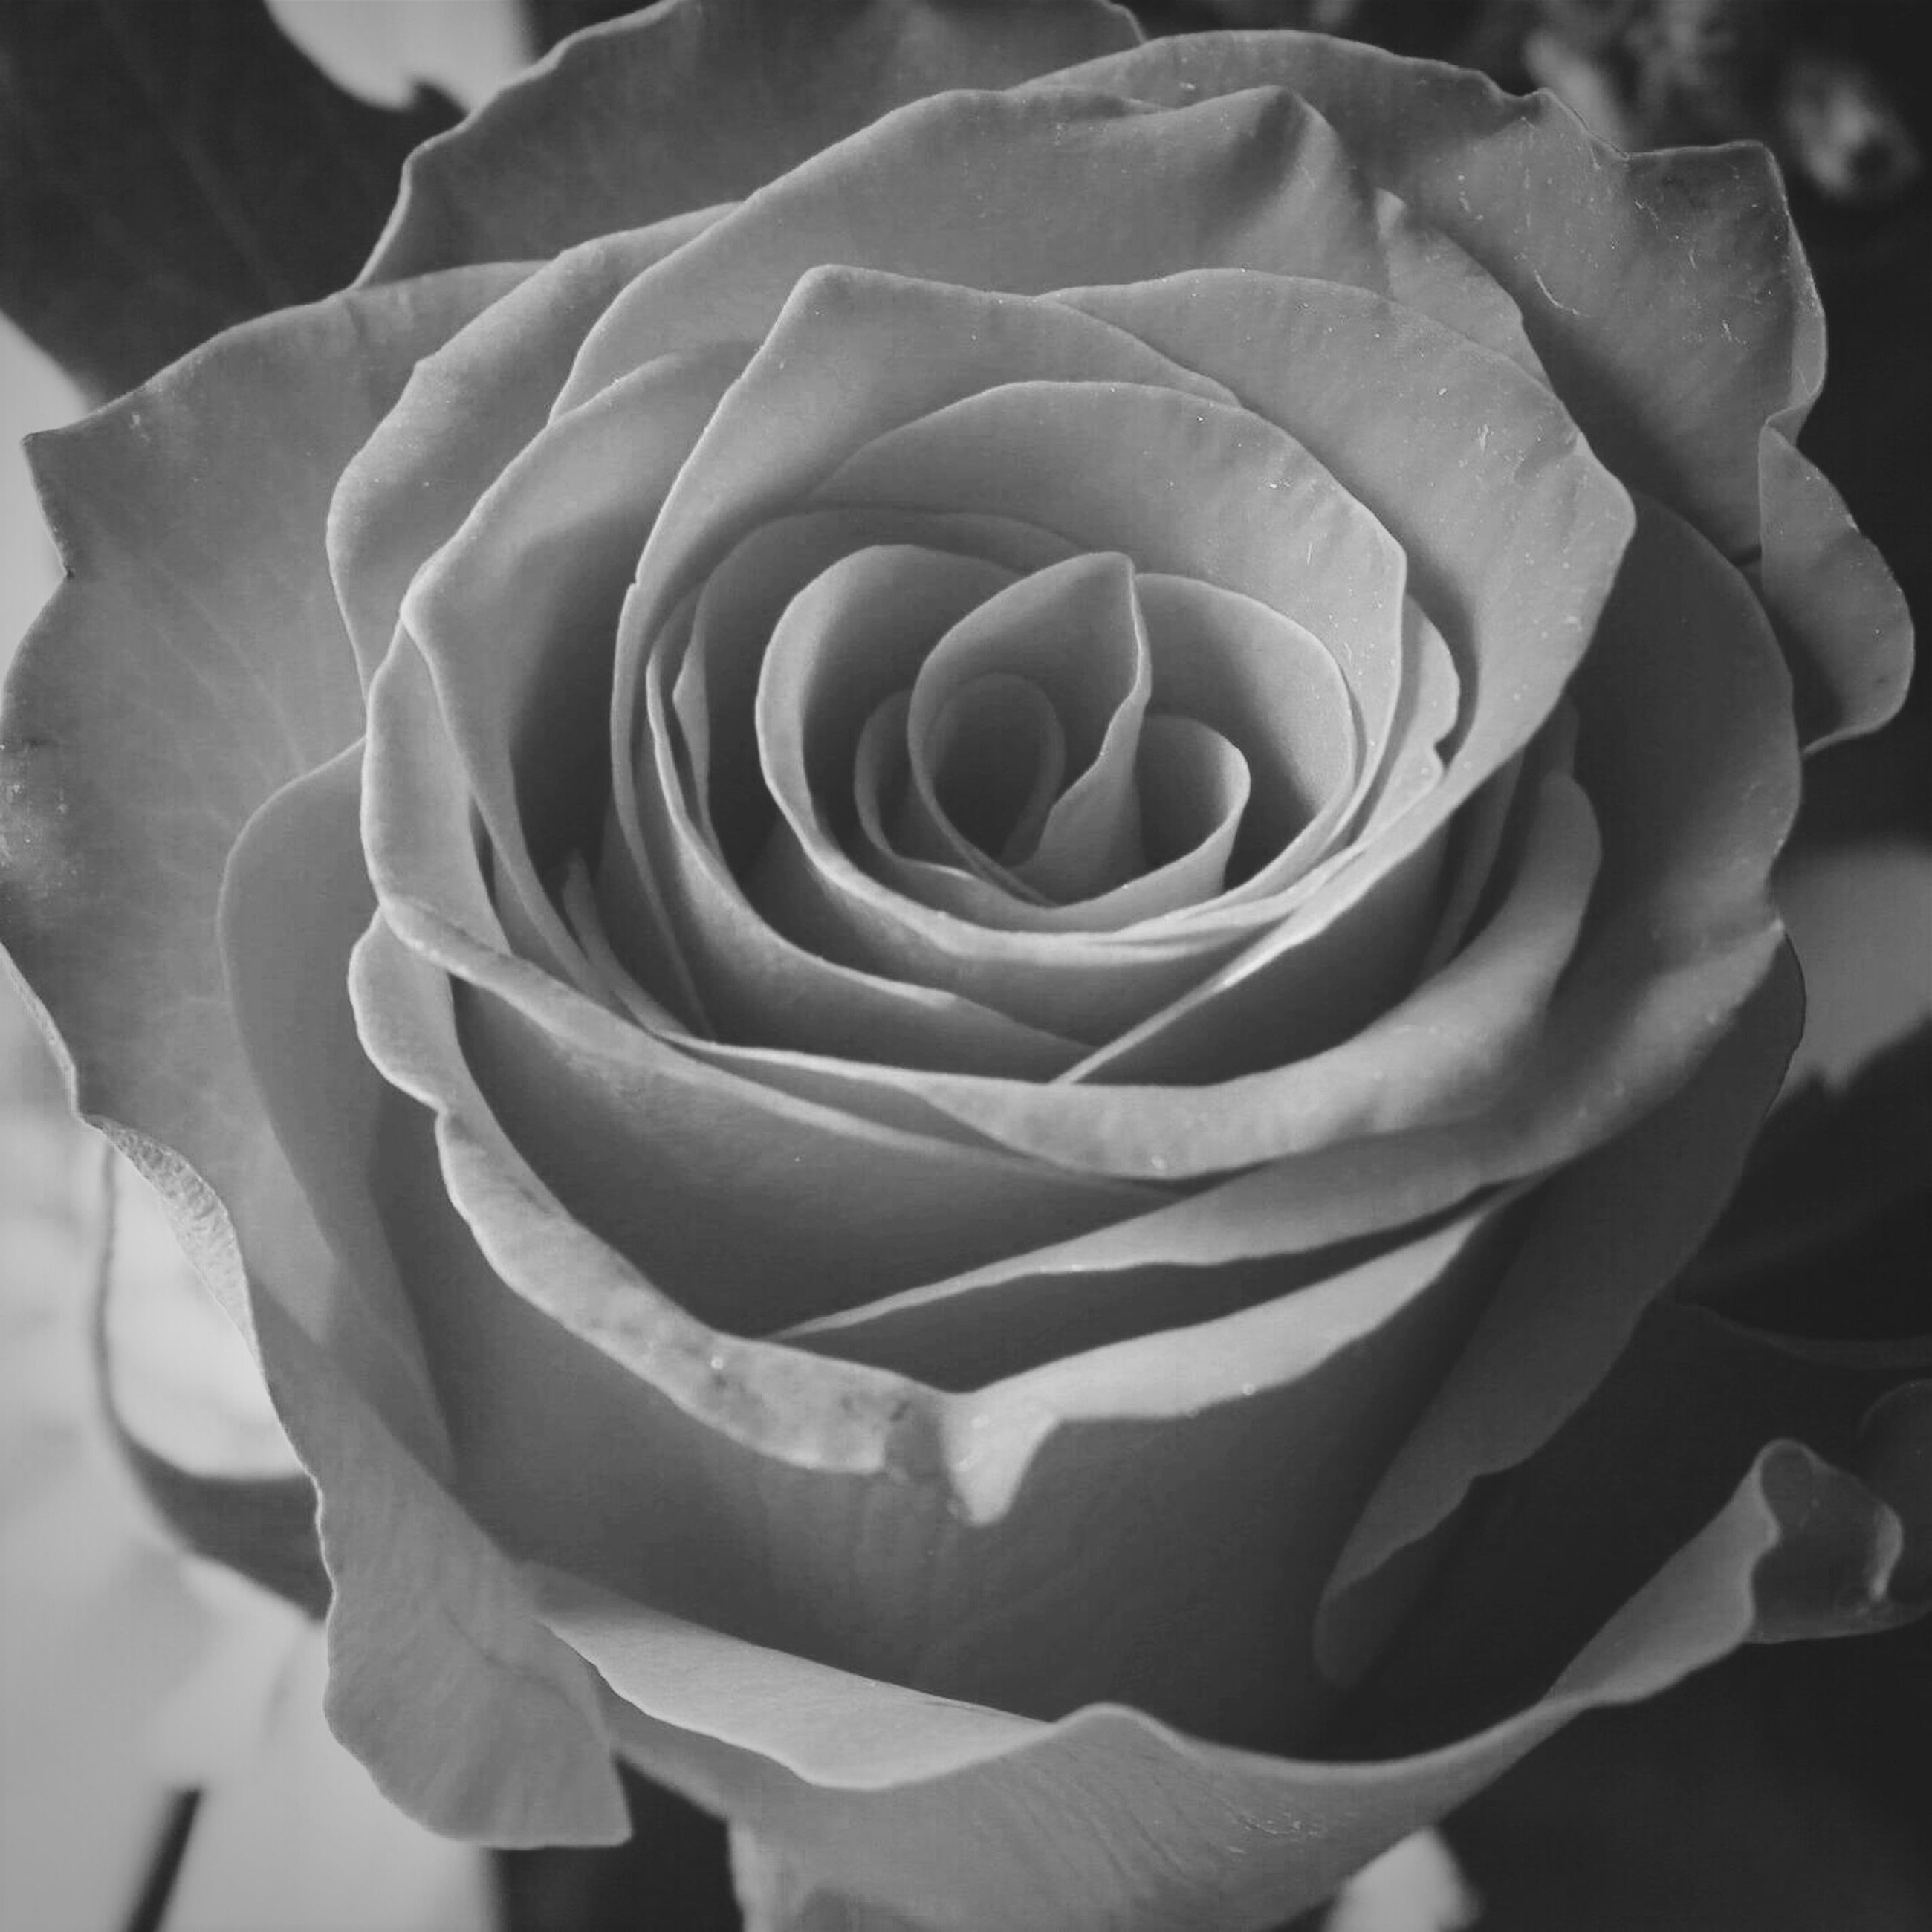 flower, petal, flower head, fragility, freshness, rose - flower, single flower, beauty in nature, close-up, growth, nature, blooming, rose, focus on foreground, in bloom, plant, single rose, natural pattern, blossom, no people